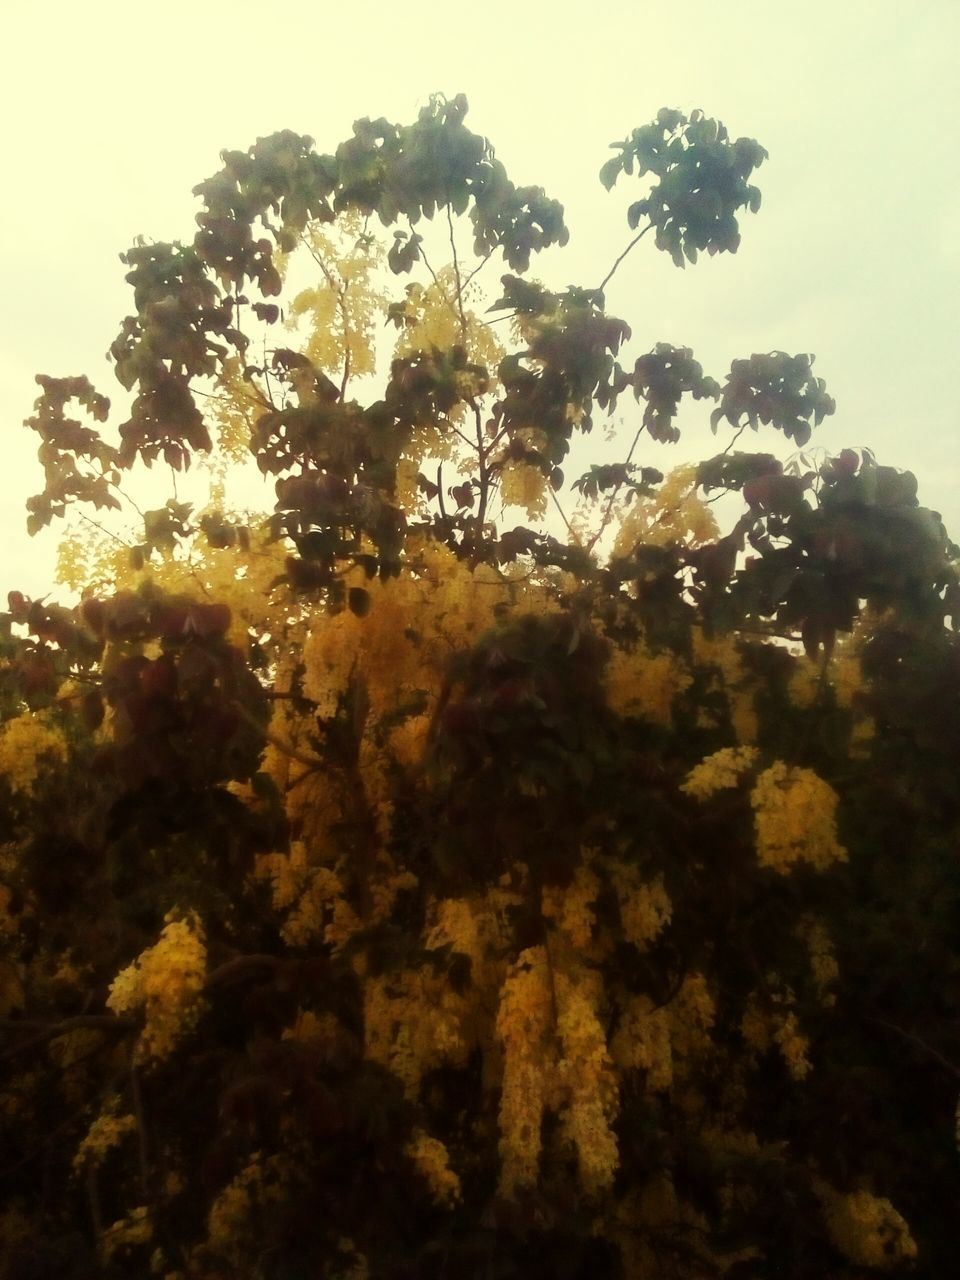 tree, growth, nature, no people, beauty in nature, low angle view, sky, outdoors, freshness, day, close-up